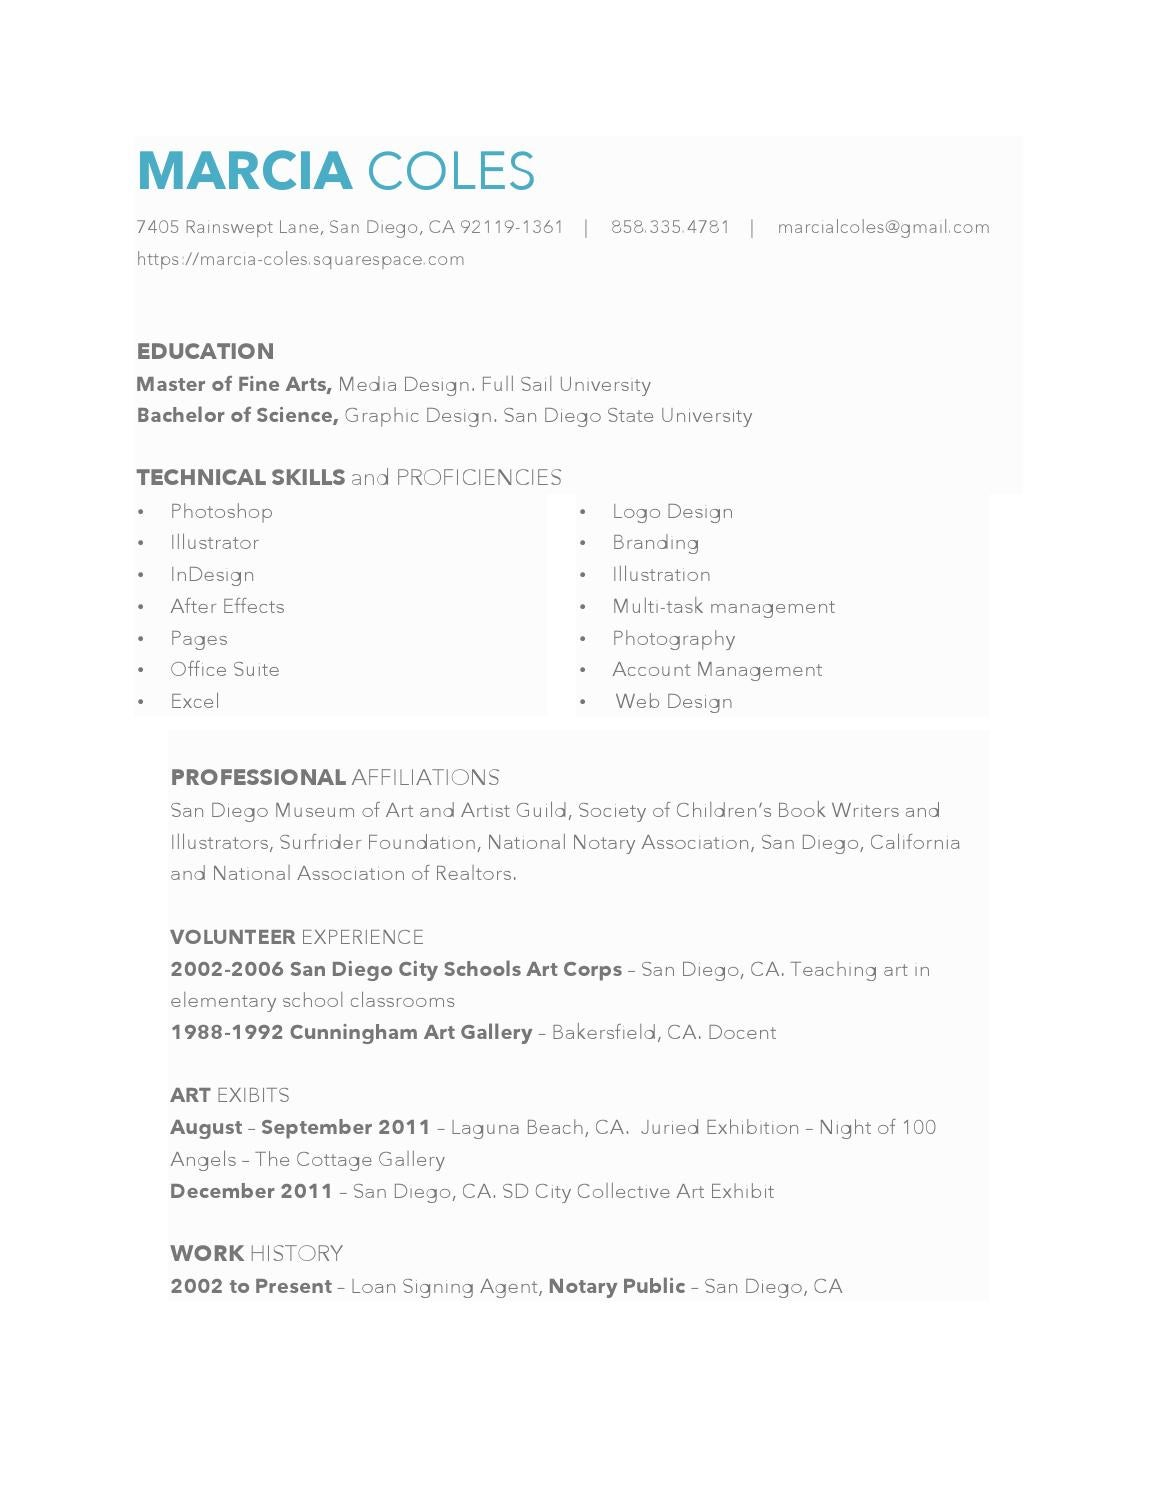 marcia coles resume by marciacoles